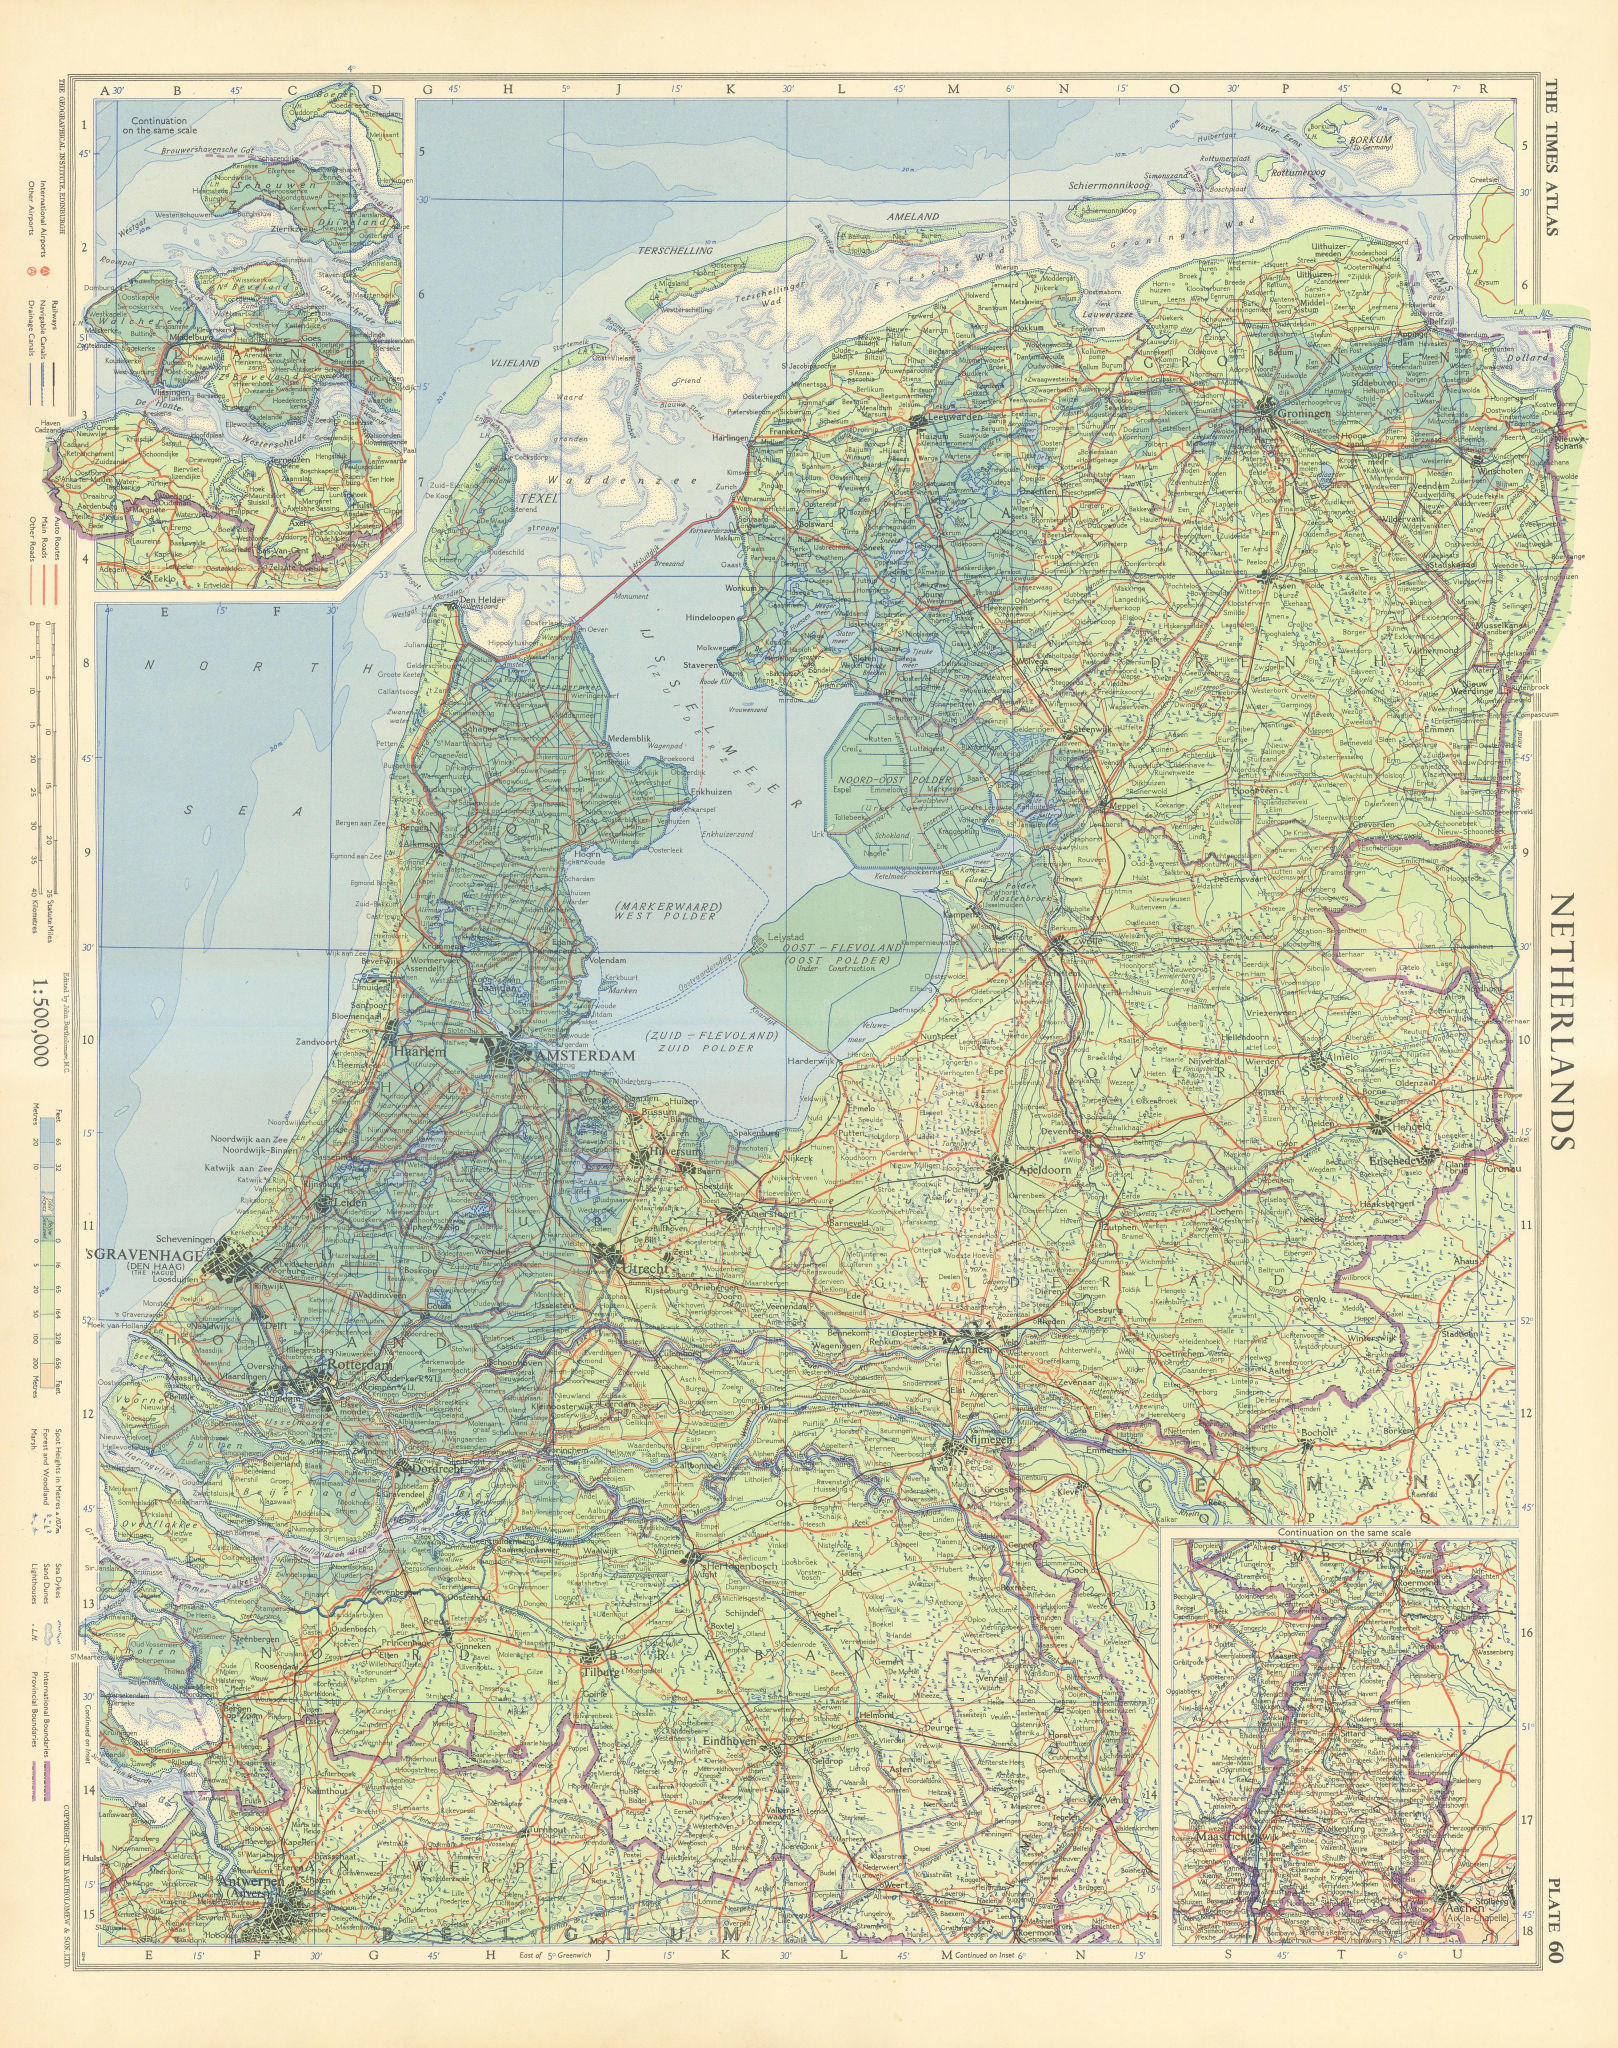 Netherlands showing polders under construction & below sea level. TIMES 1955 map